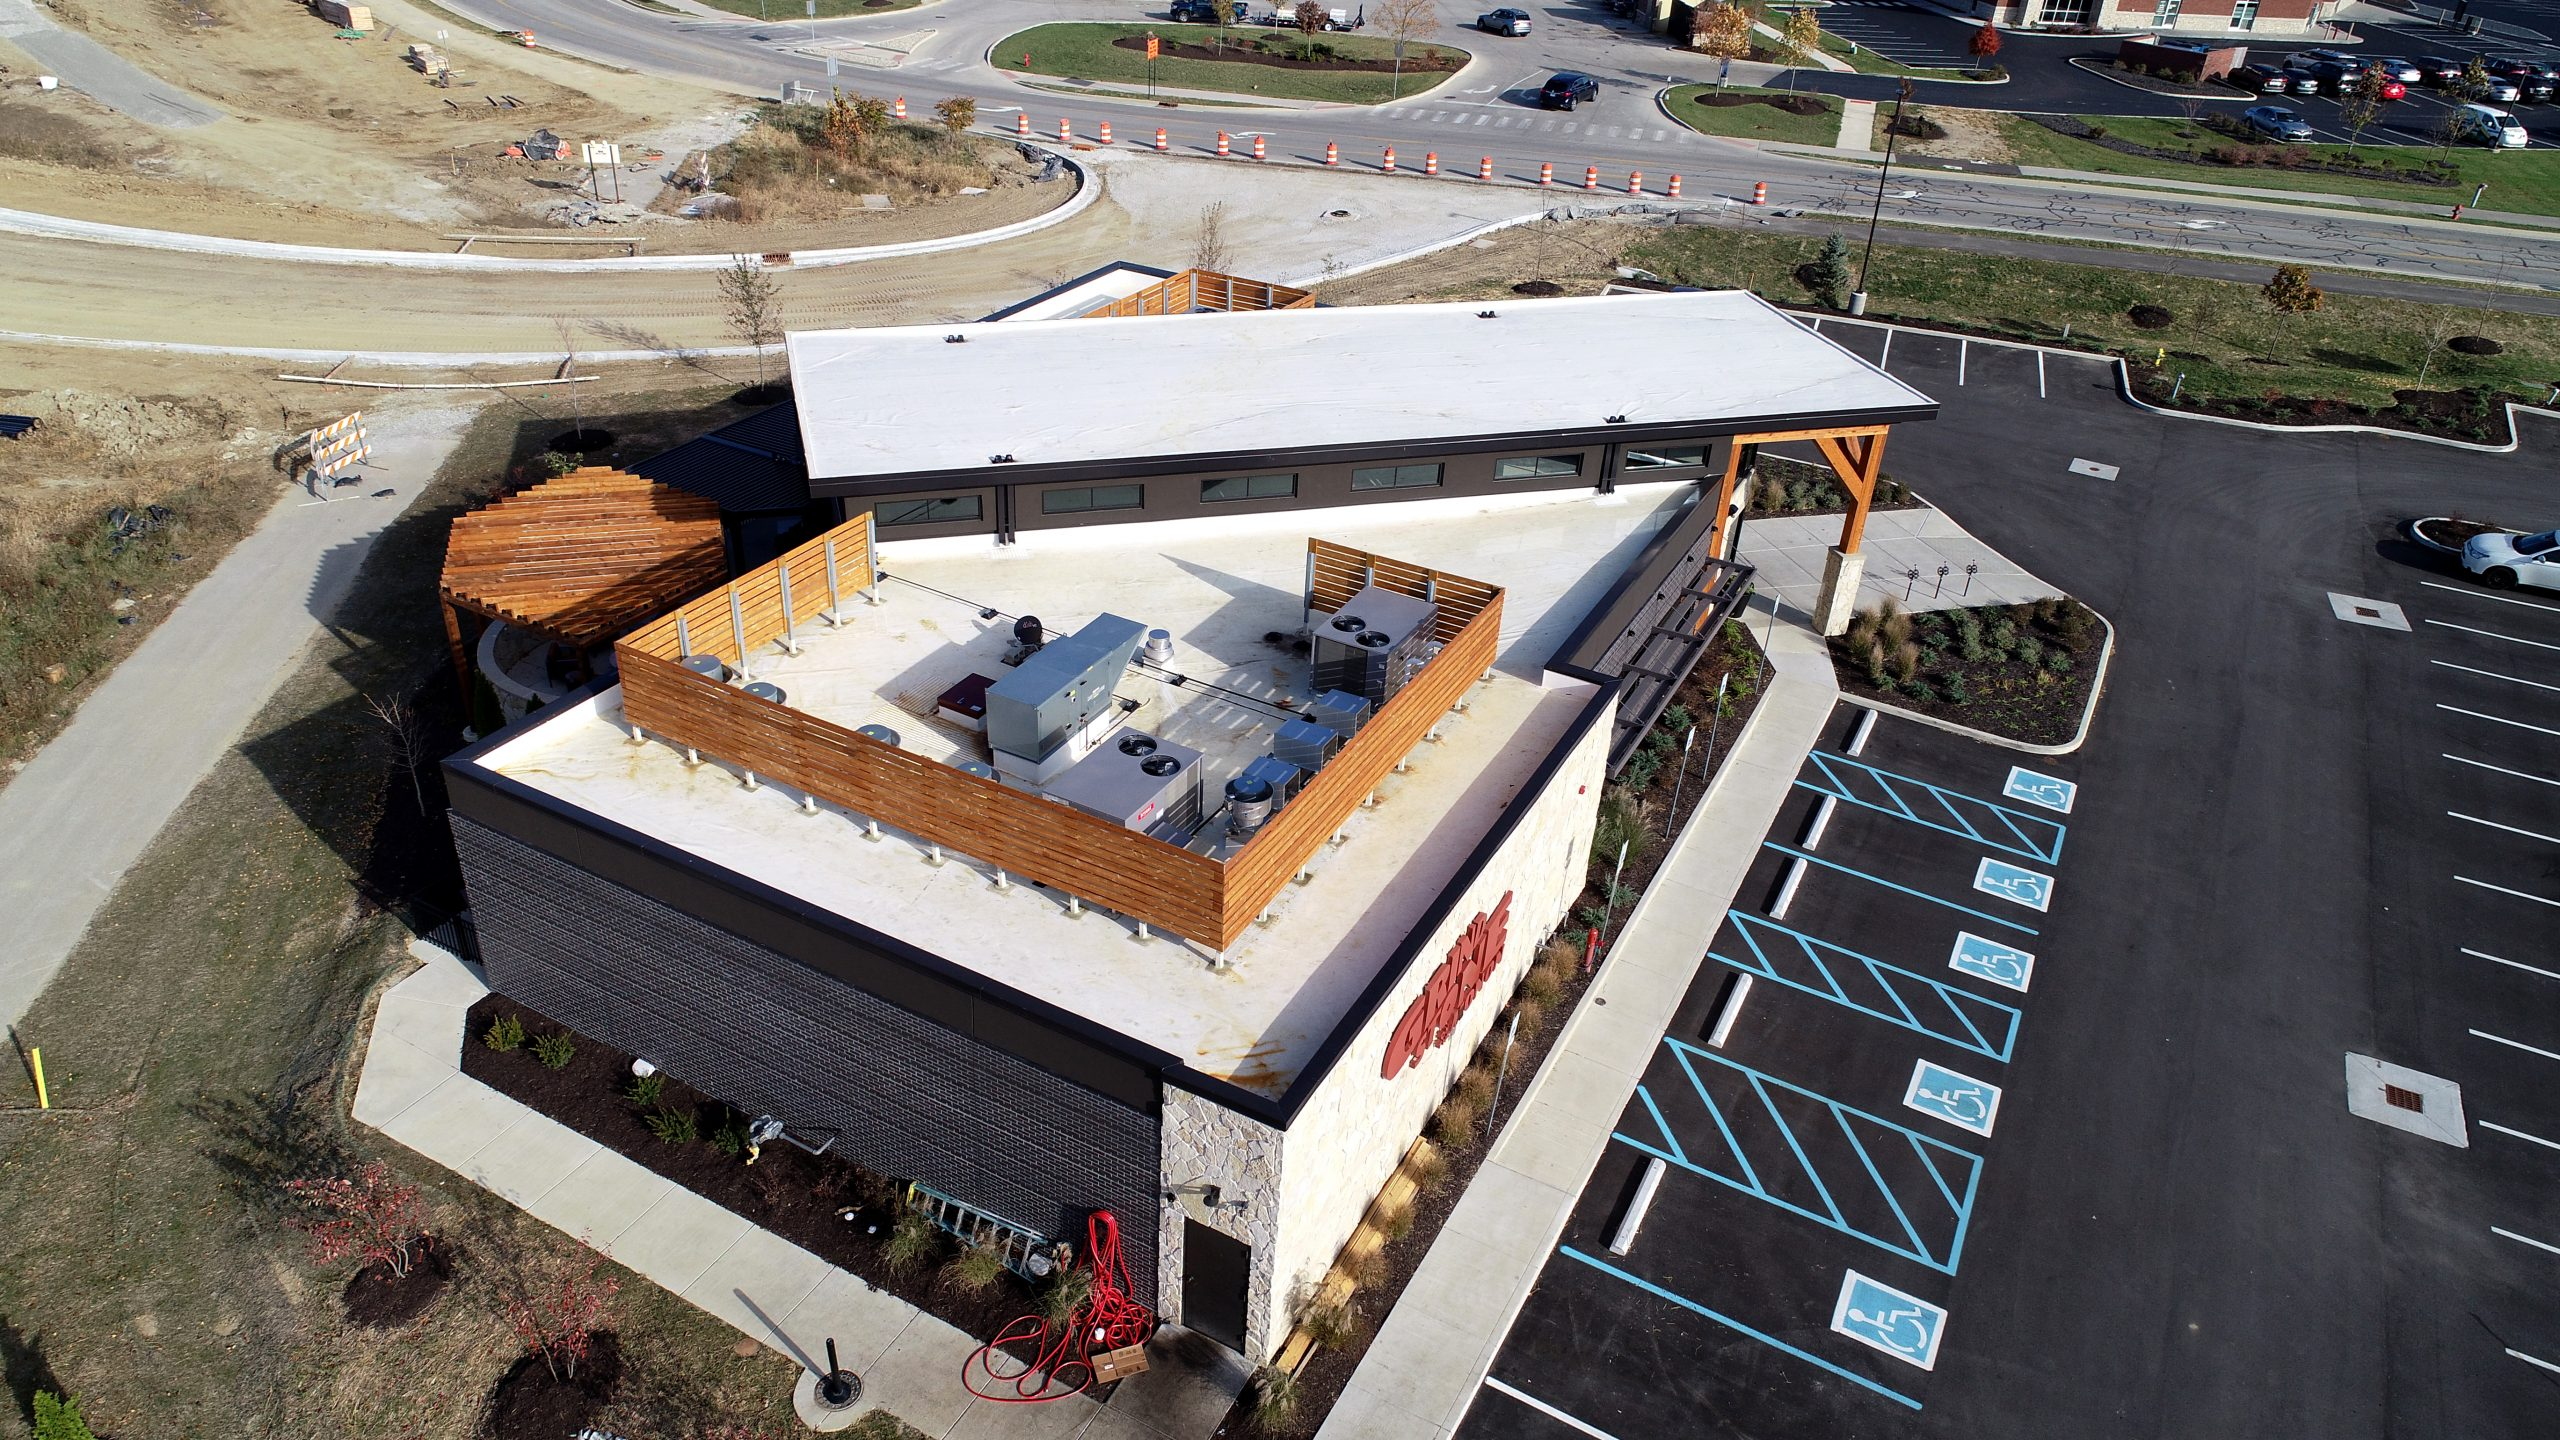 Grindstone Charleys commercial roofing project by ce reeve roofing in Indiana